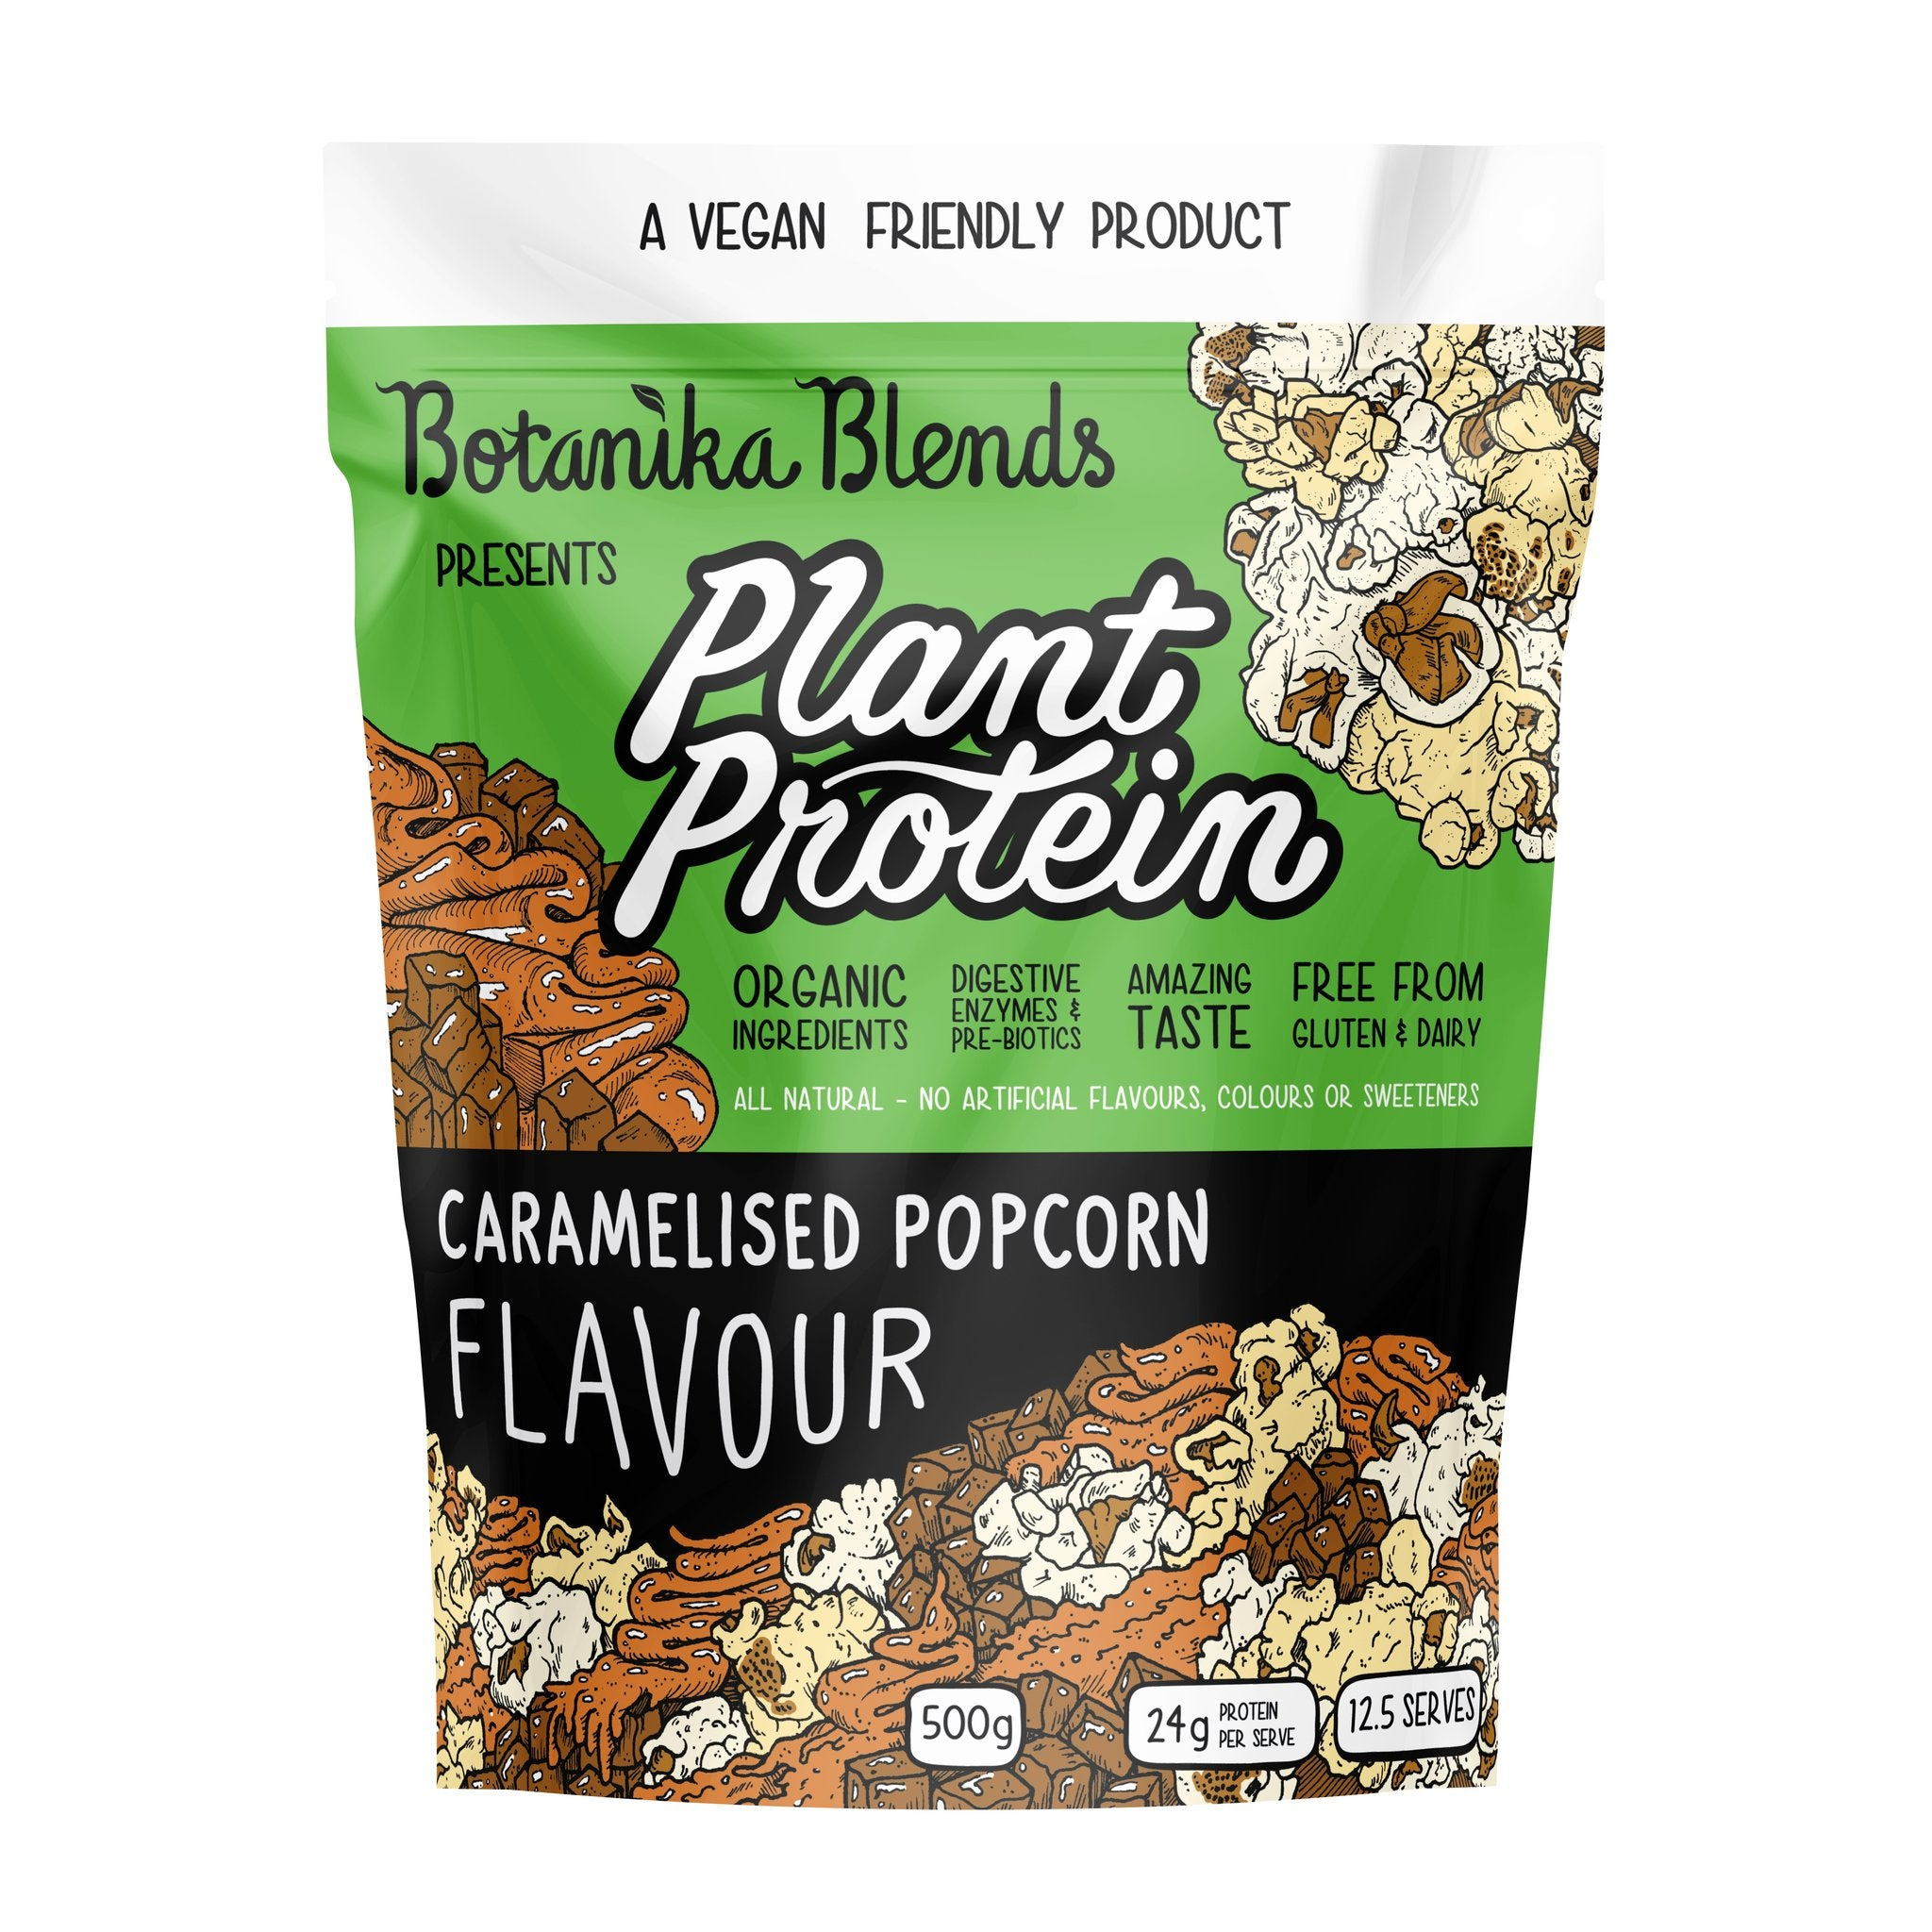 Botanika Blends Vegan Protein Powder - Caramelised Popcorn Flavour 500g